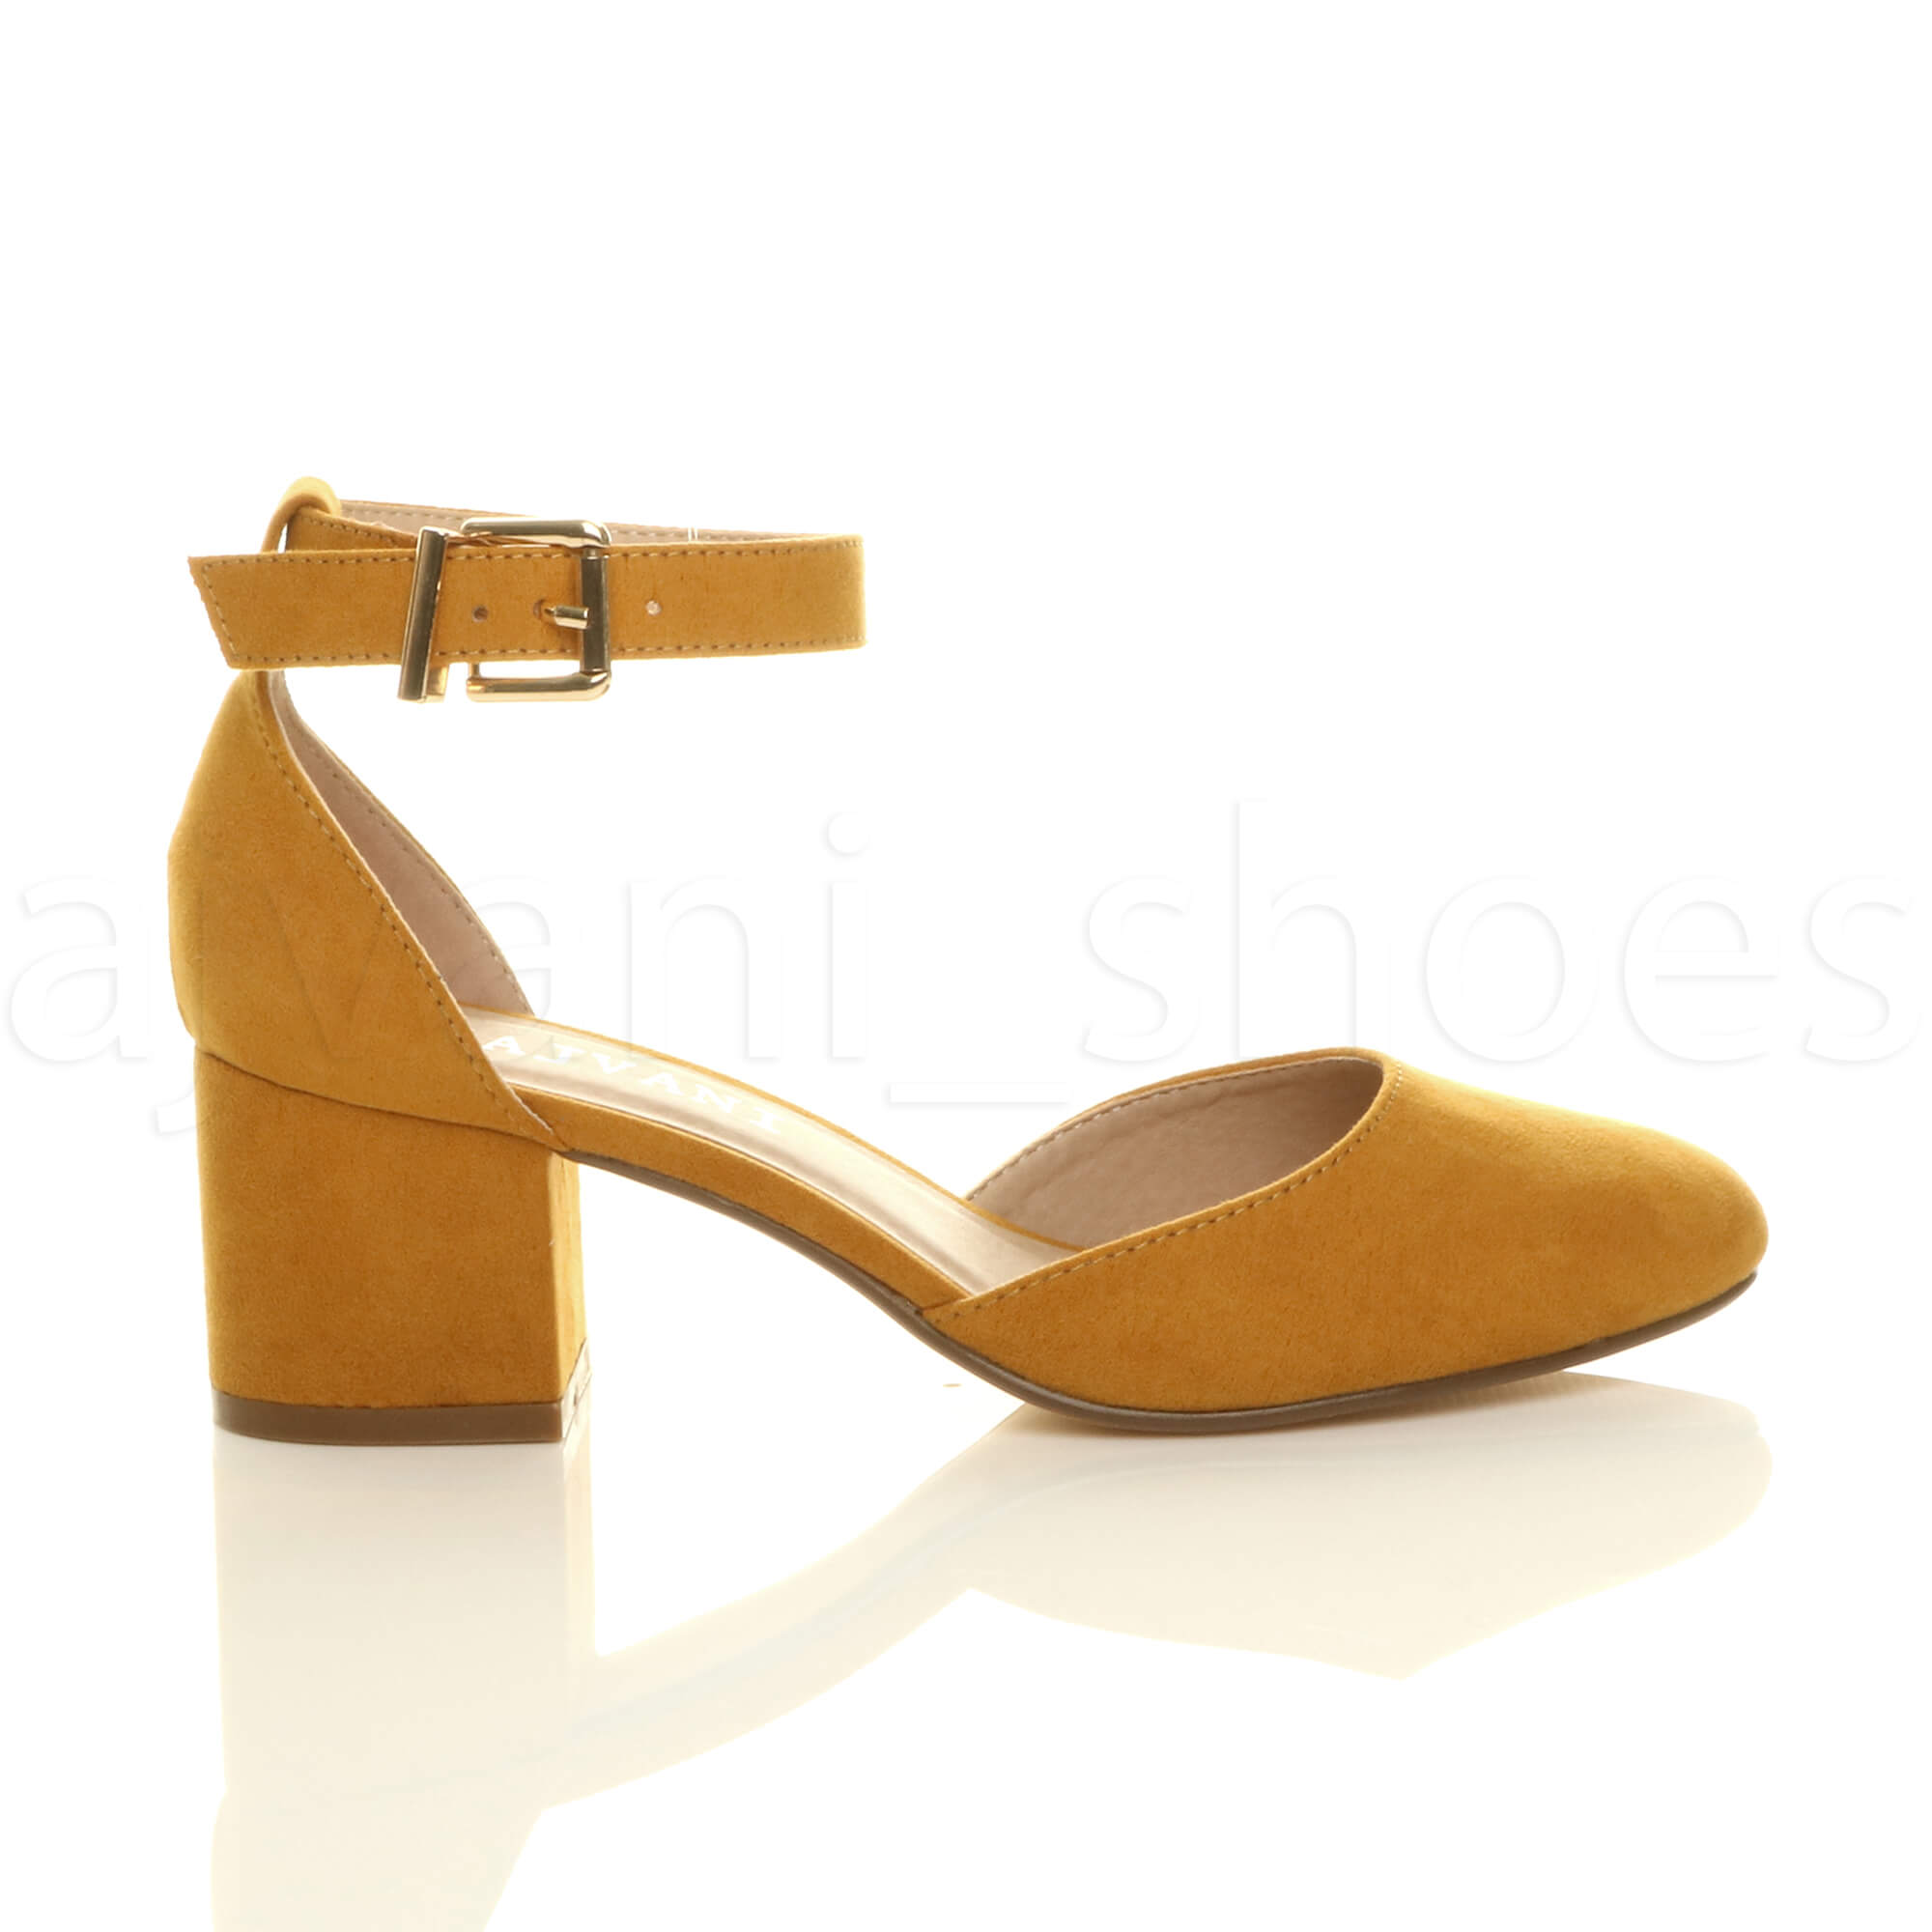 WOMENS-LADIES-LOW-MID-BLOCK-HEEL-ANKLE-STRAP-MARY-JANE-COURT-SHOES-SANDALS-SIZE thumbnail 83